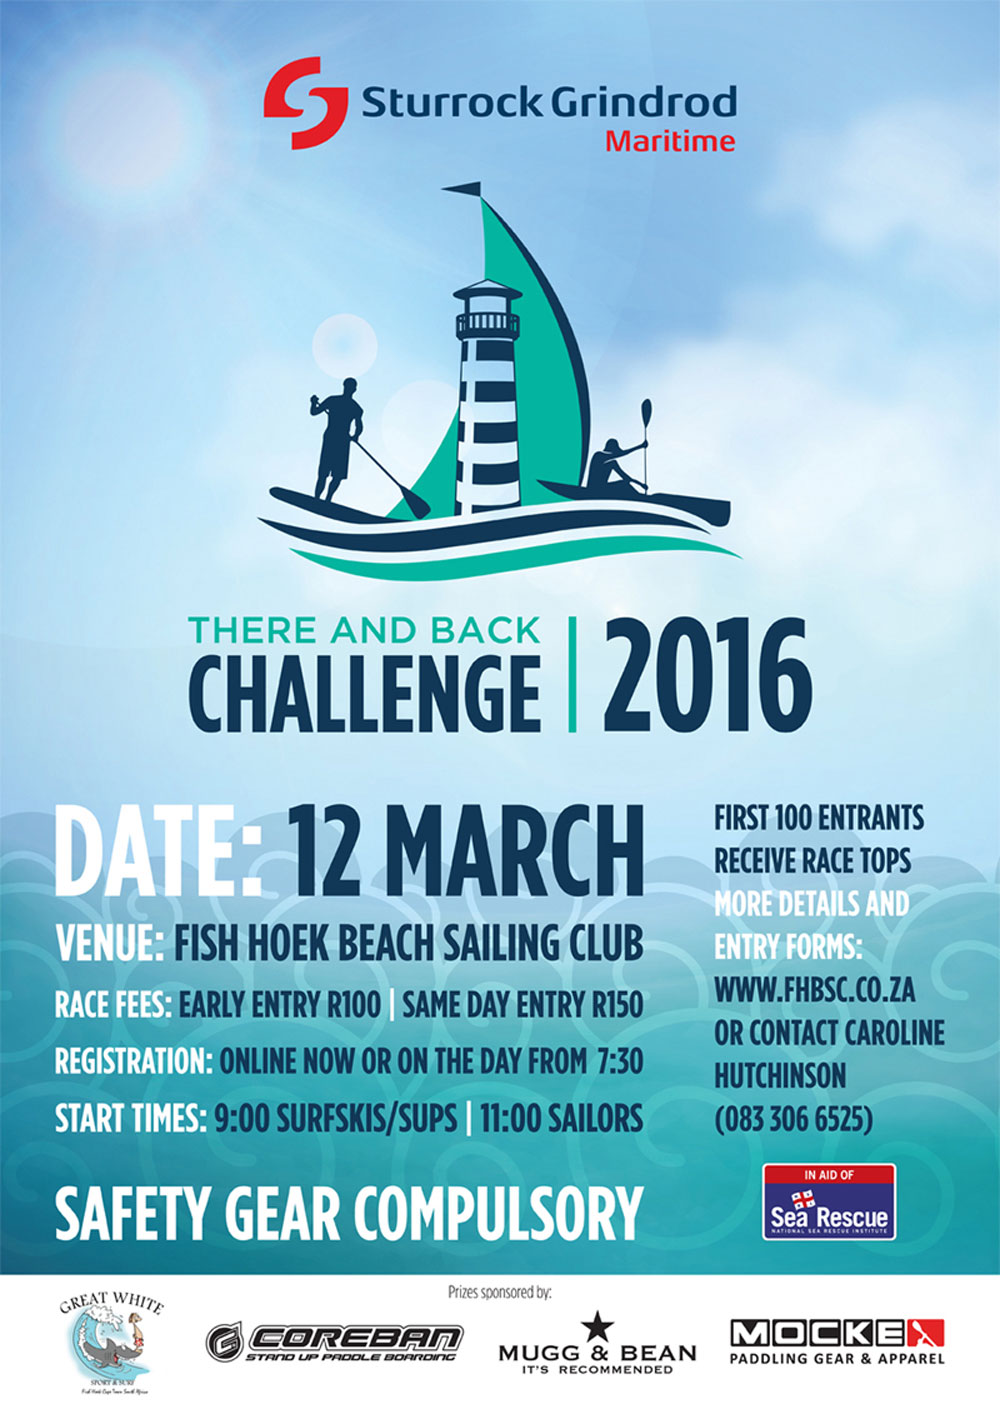 THERE AND BACK CHALLENGE 2016